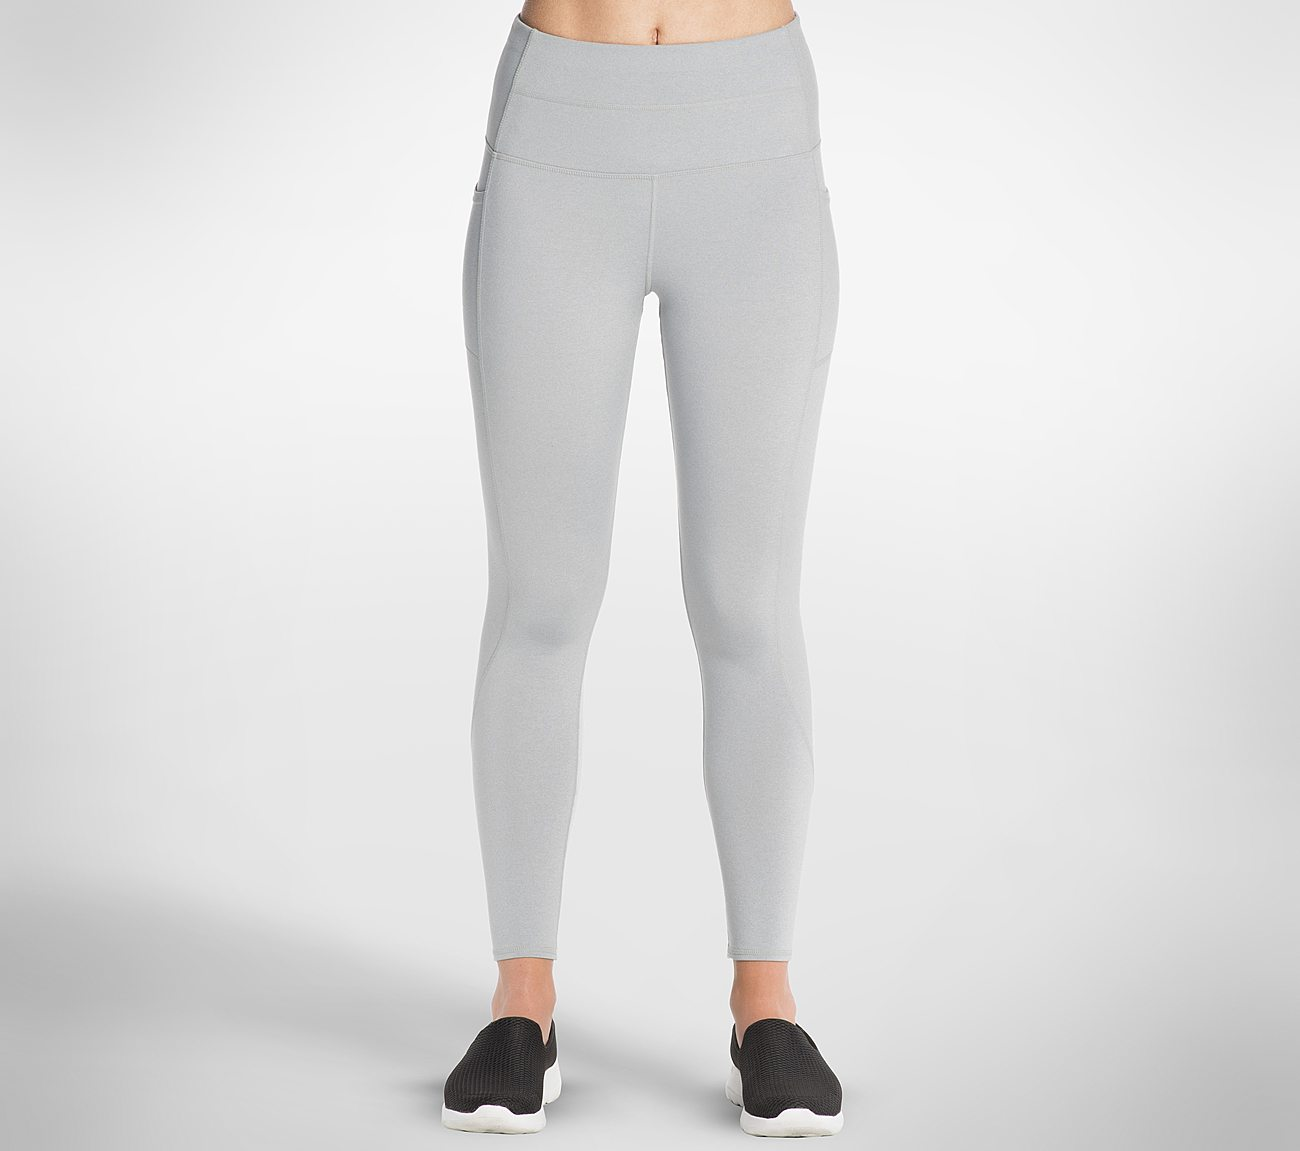 Skechers Backbend High Waisted Legging